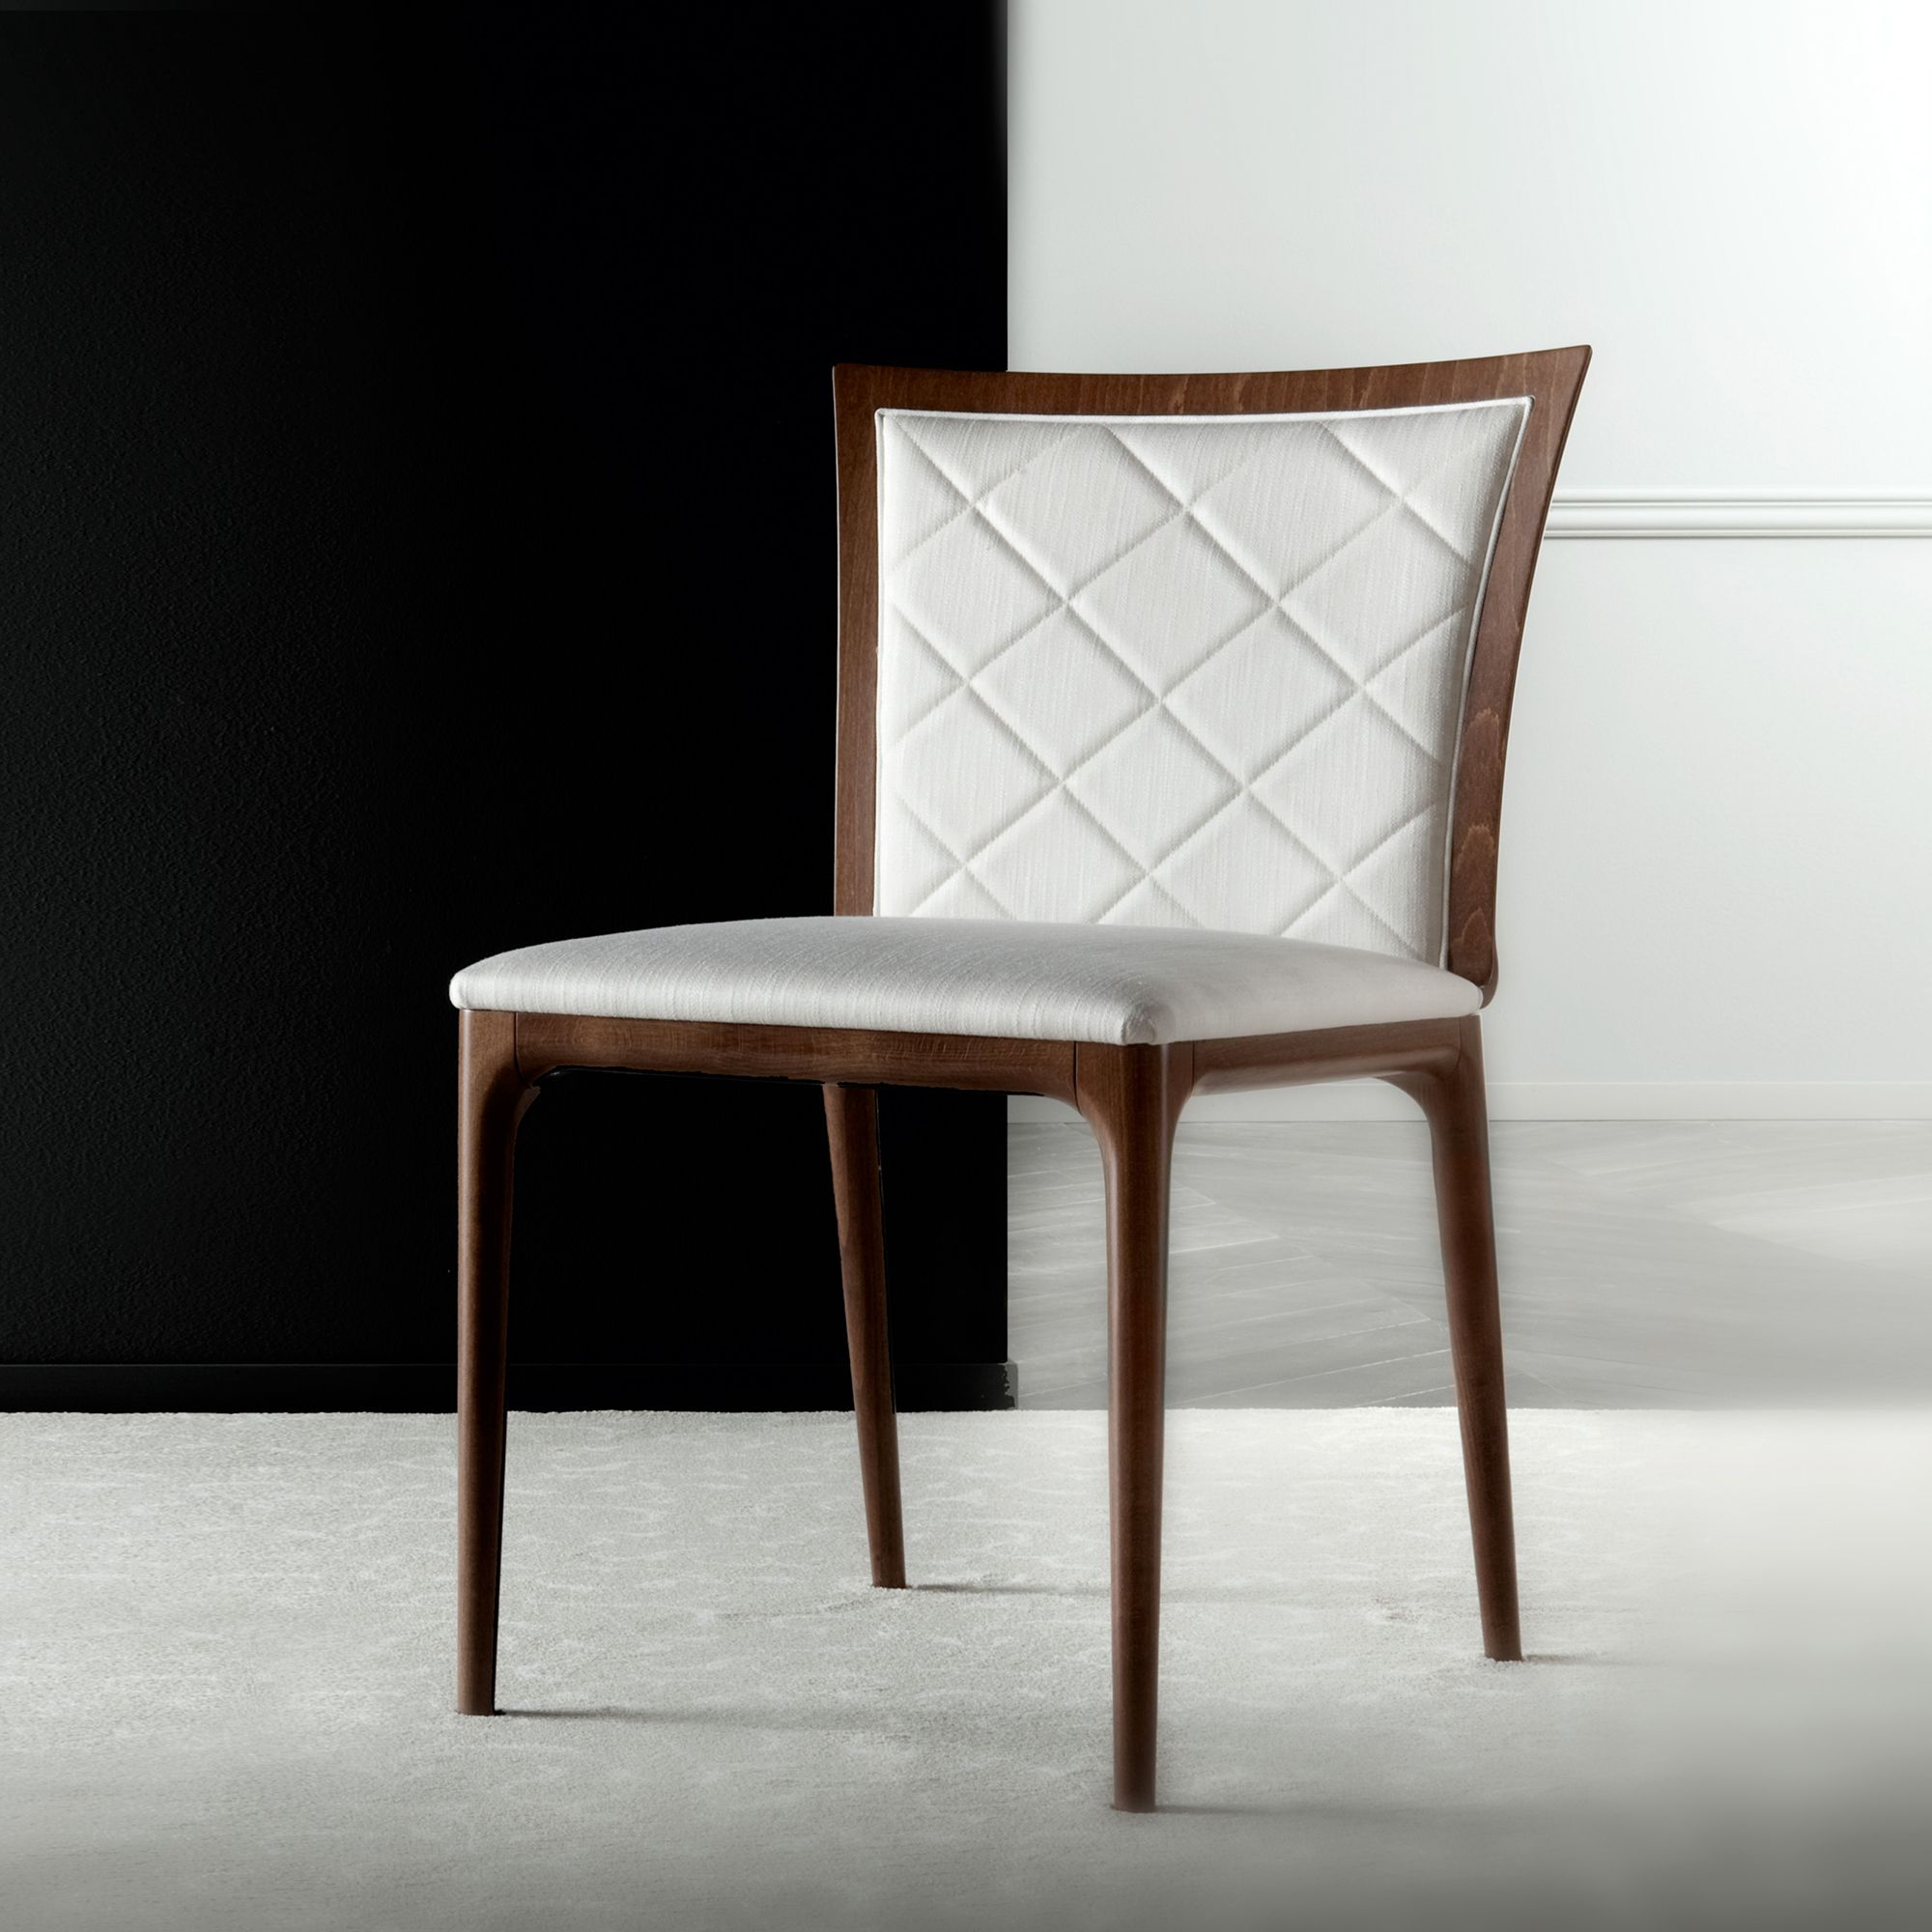 Luxury Italian Upholstered Four Seasons Chair With Metal